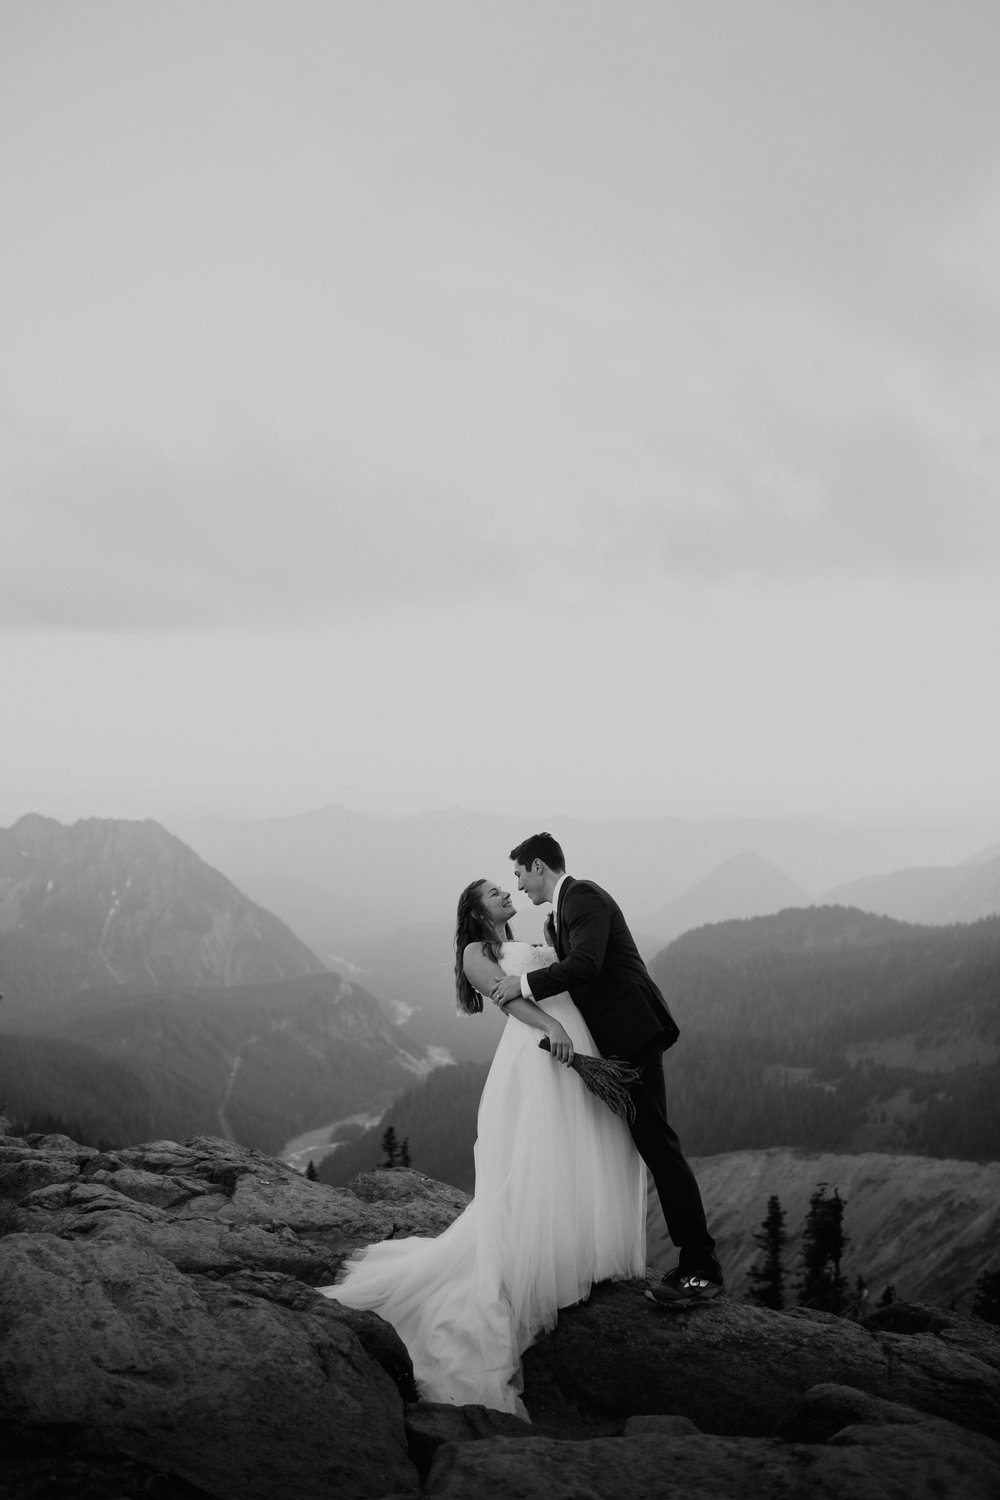 Nicole-Daacke-Photography-Mt-Rainier-elopement-photographer-washington-mountain-epic-wedding-photography-wildflowers-at-rainier-pine-tree-cloudy-summer-day-at-mountain-rainier-55.jpg